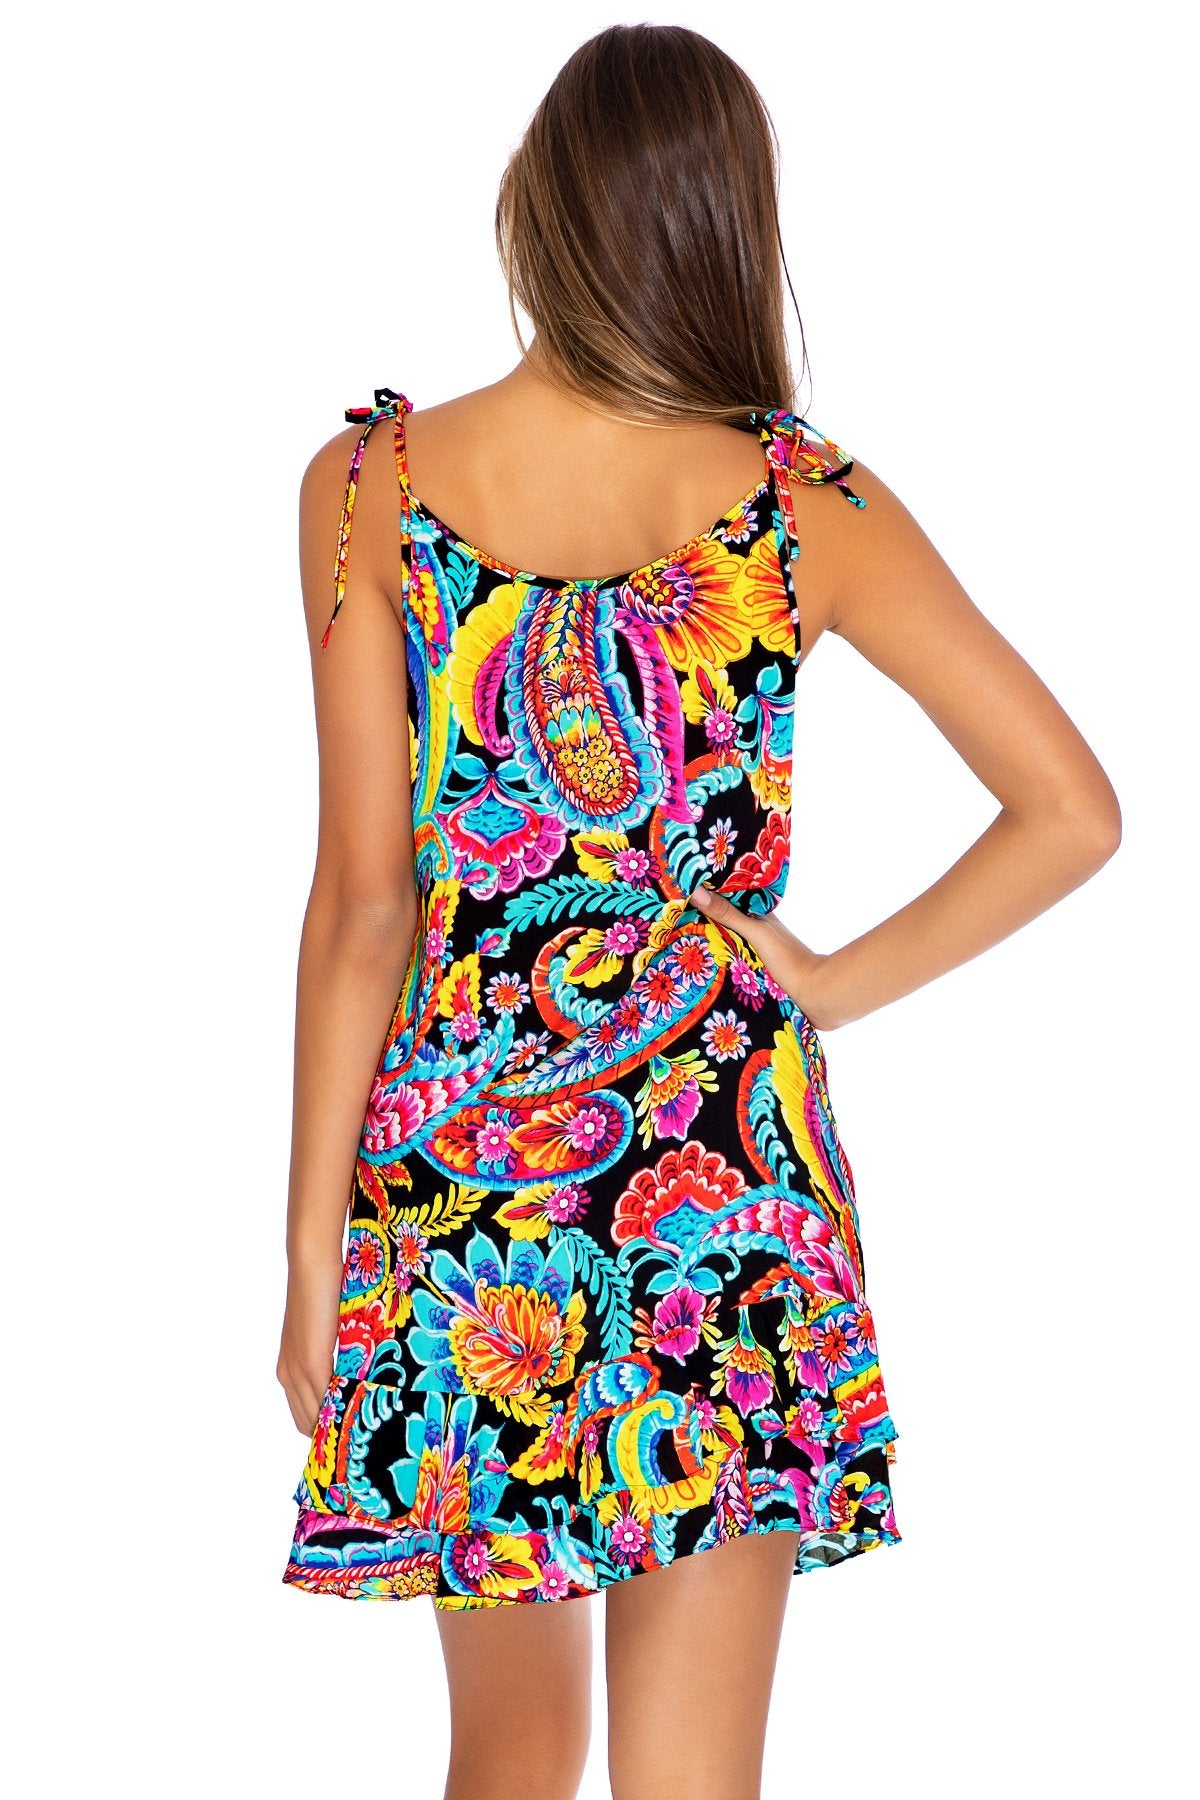 MOON NIGHTS - Ruffle Dress • Multicolor (3951920578662)